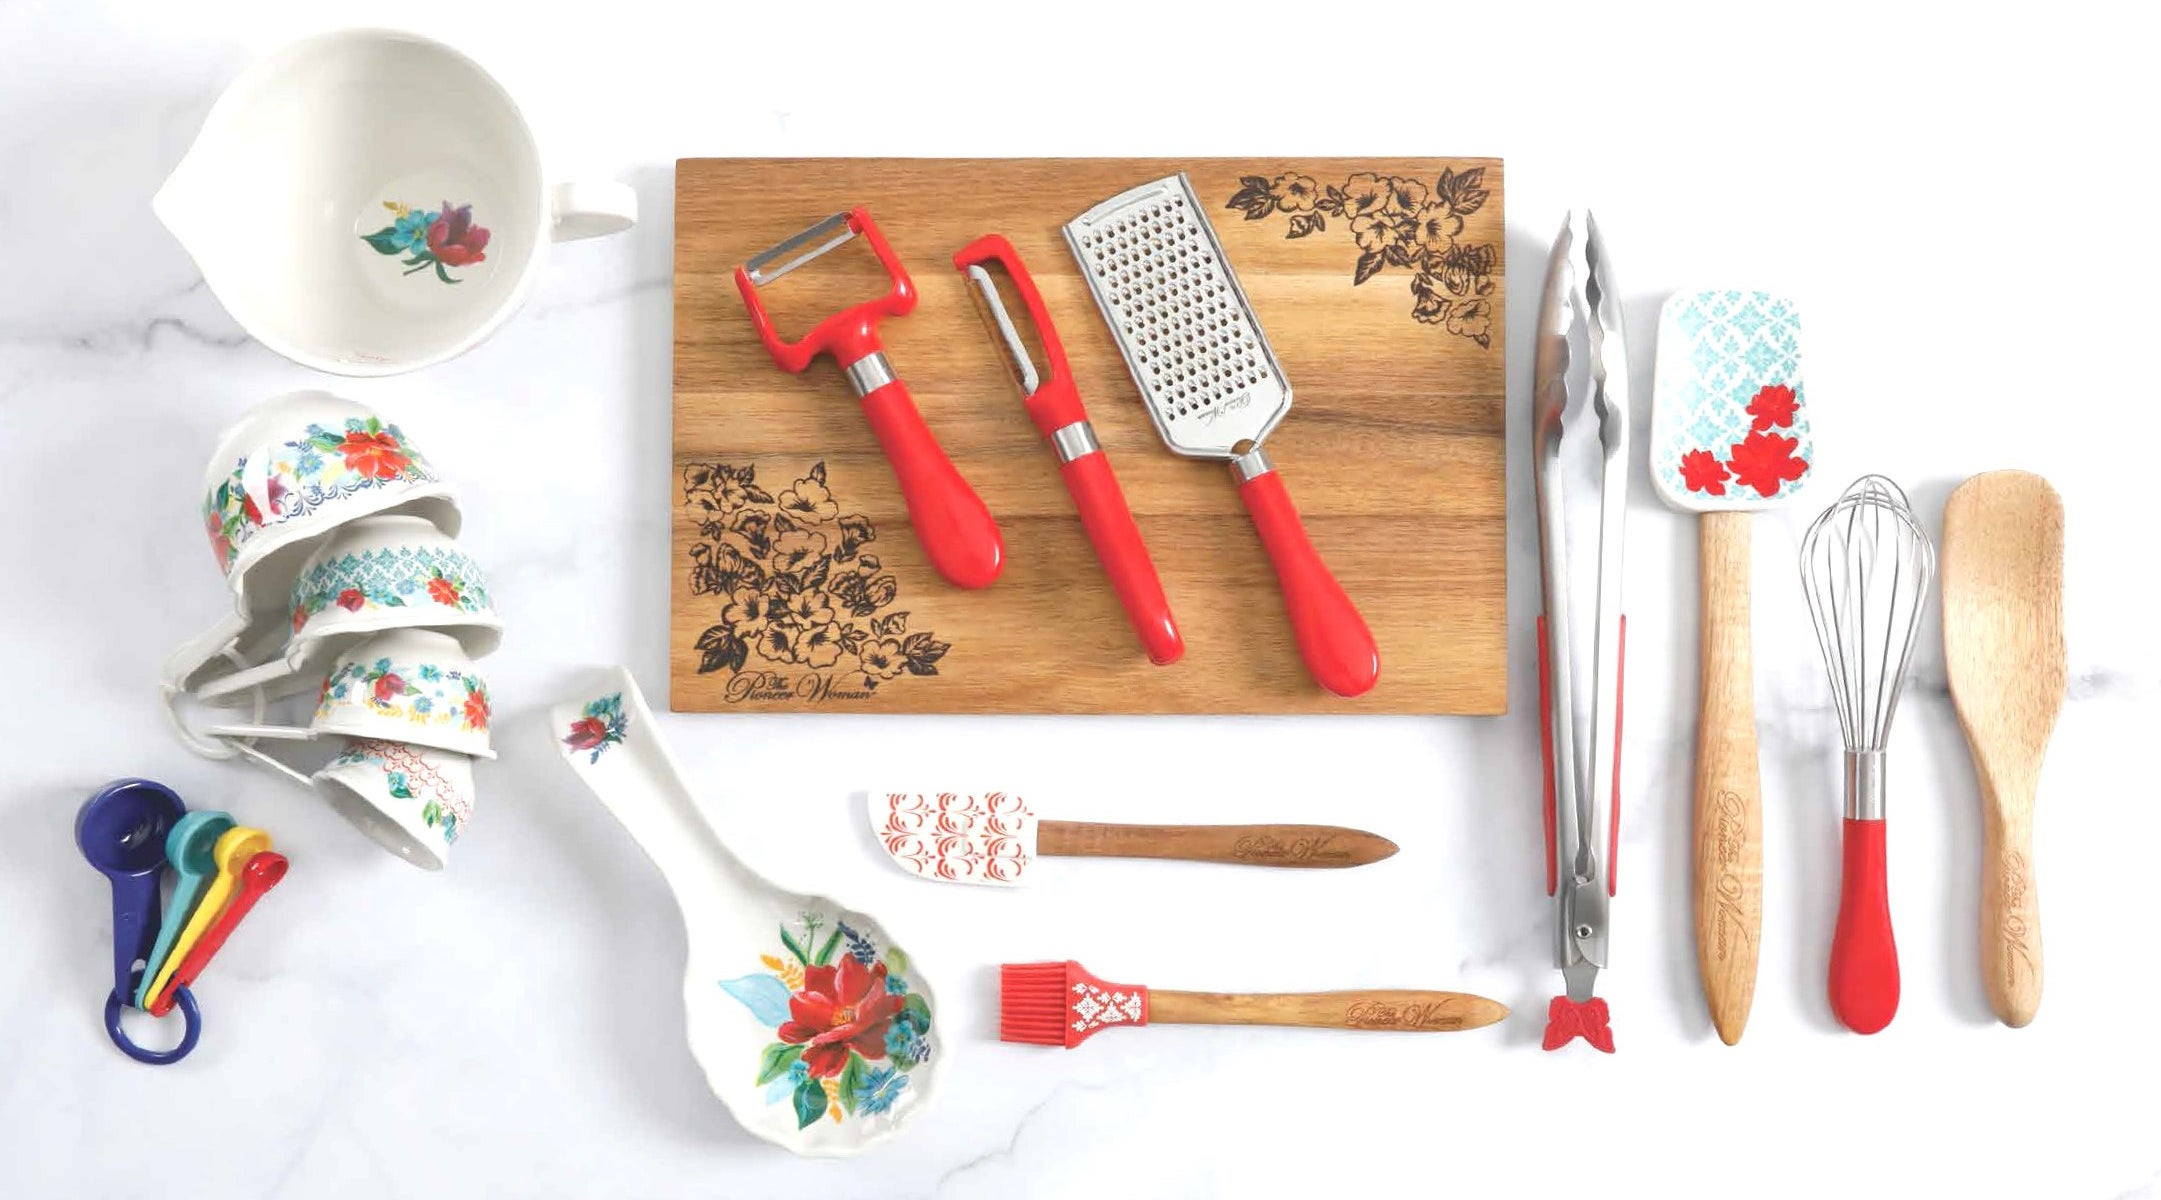 a 20-piece kitchen set displayed on a cutting board